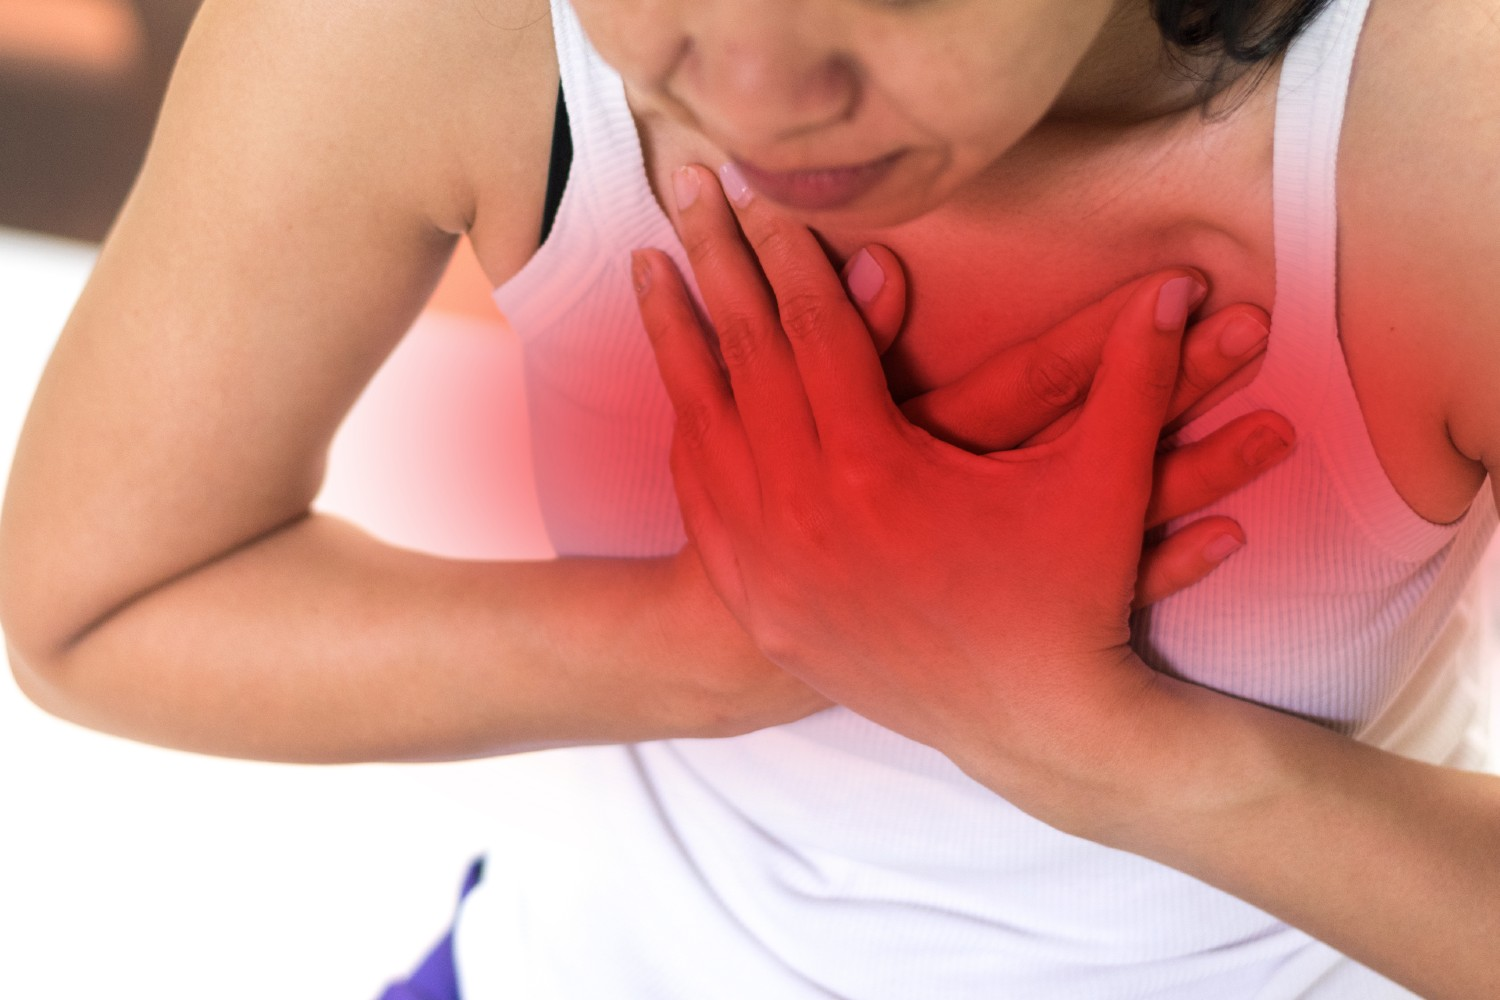 When chest pain doesn't mean a heart attack